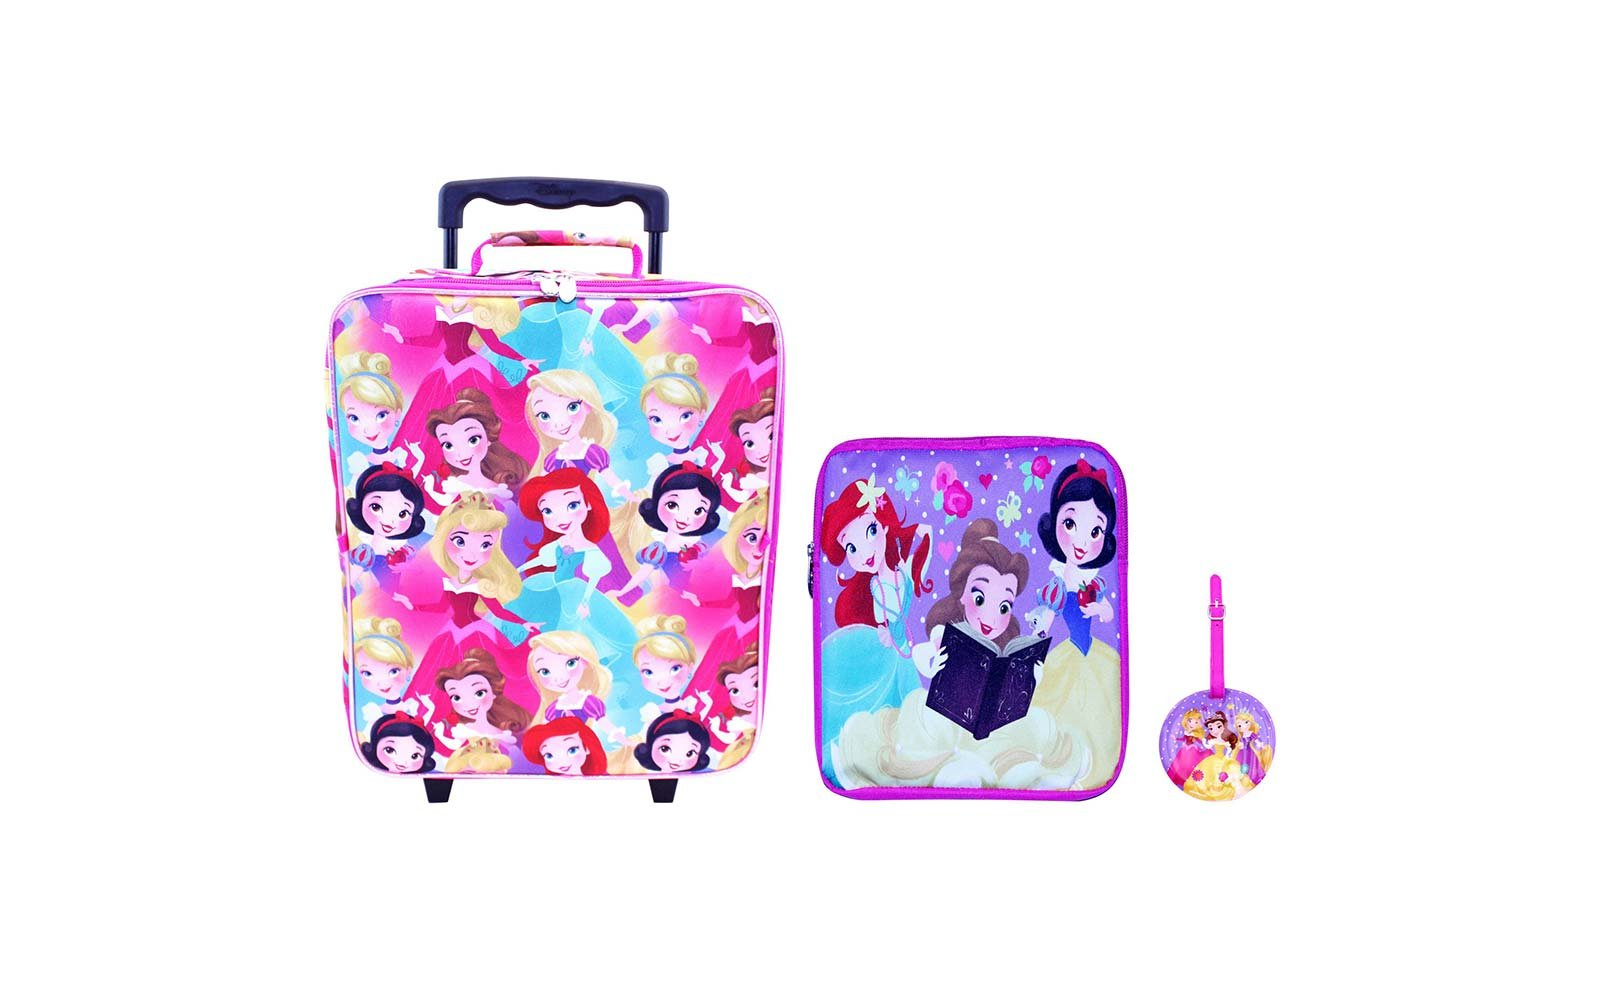 Disney Themed Luggage For Kids And Adults Travel Leisure